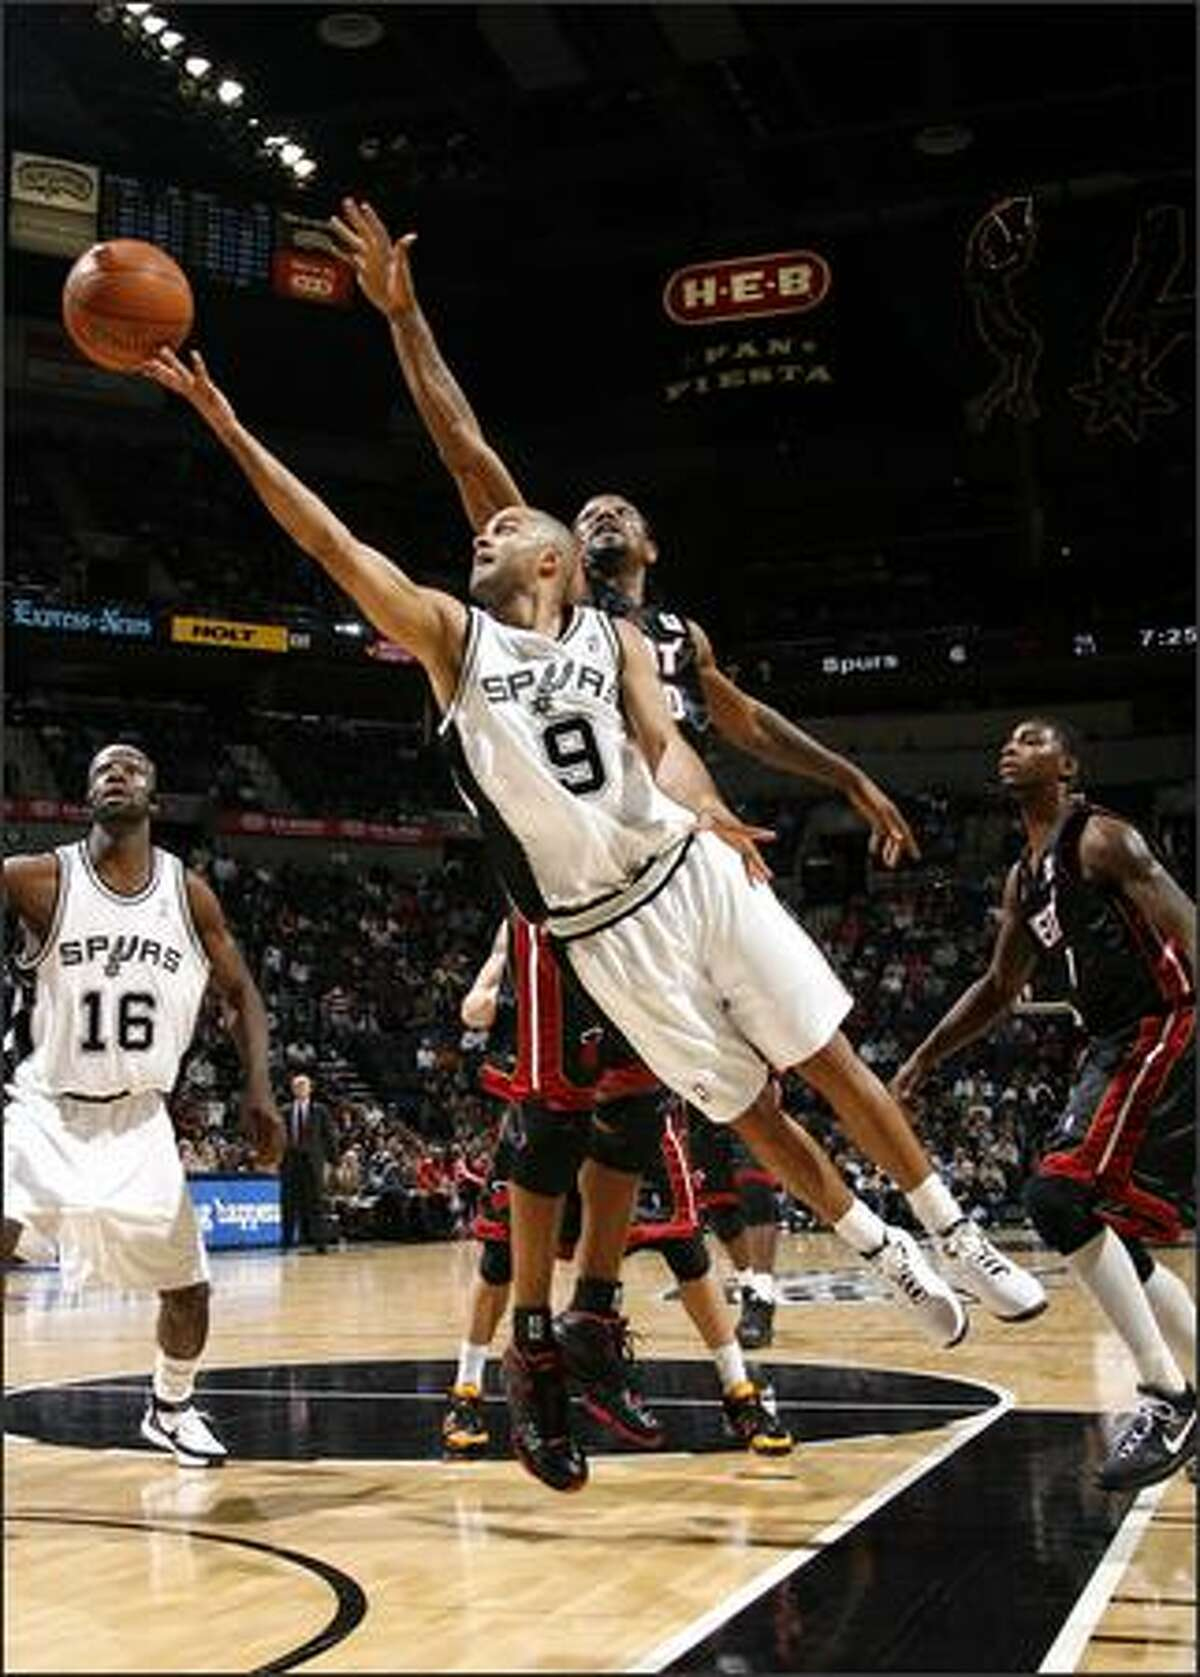 Tony Parker #9 of the San Antonio Spurs drives to the basket for a layup past Udonis Haslem #40 of the Miami Heat during a game at the AT&T Center in San Antonio, Texas. (Photo by Joe Murphy/NBAE via Getty Images)